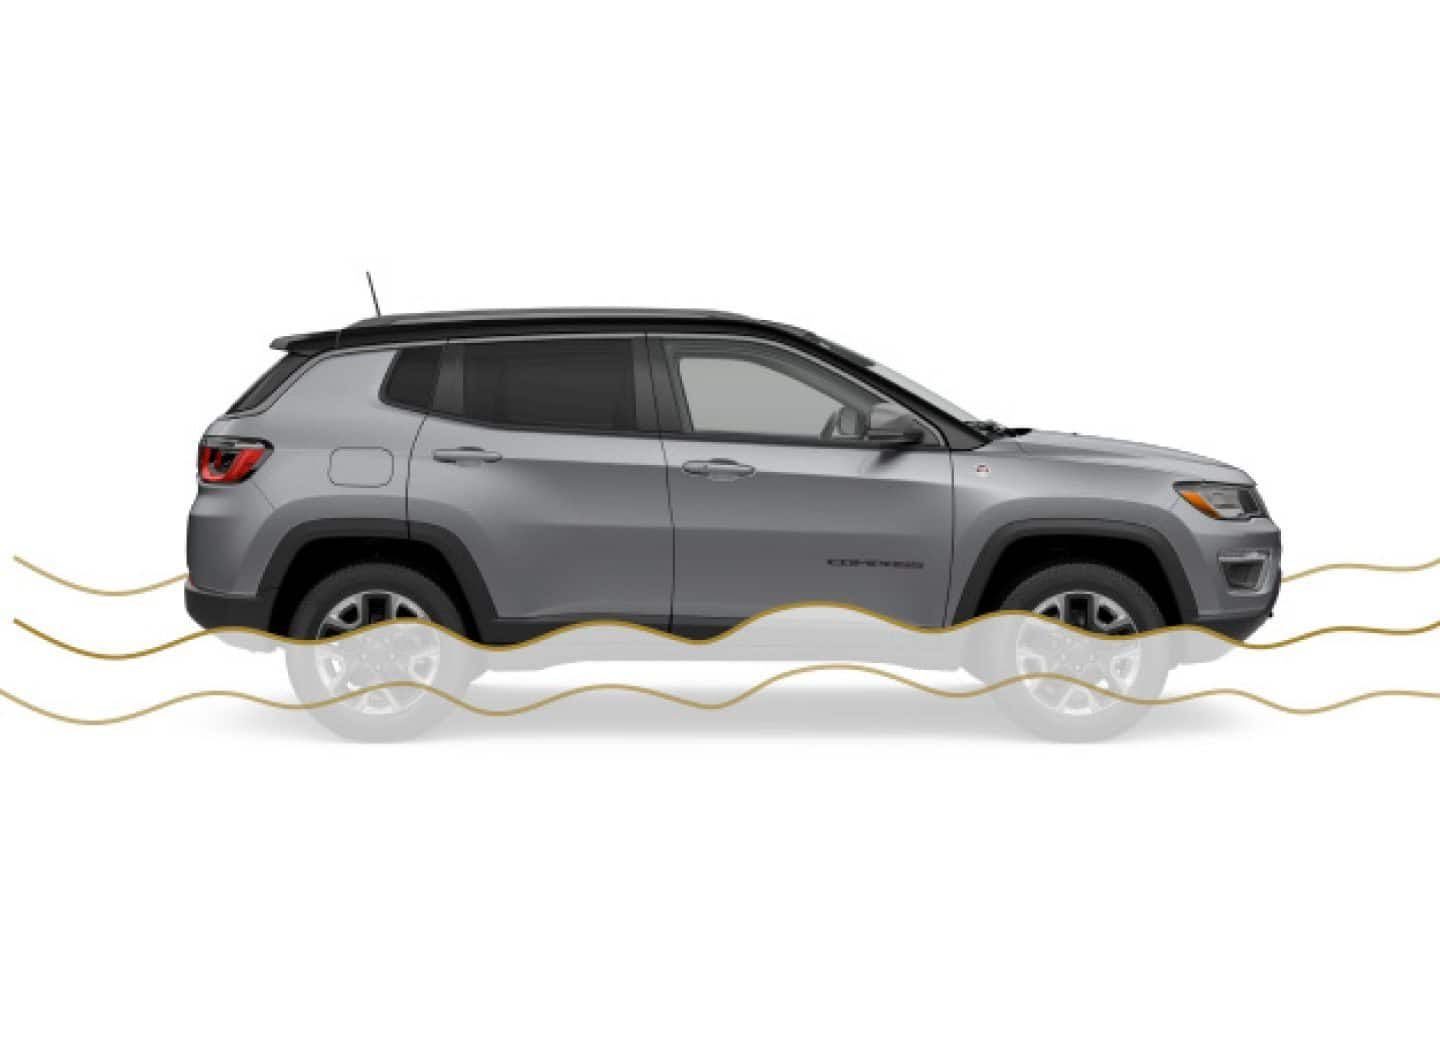 2019 Jeep® Compass - All Season Capability Features